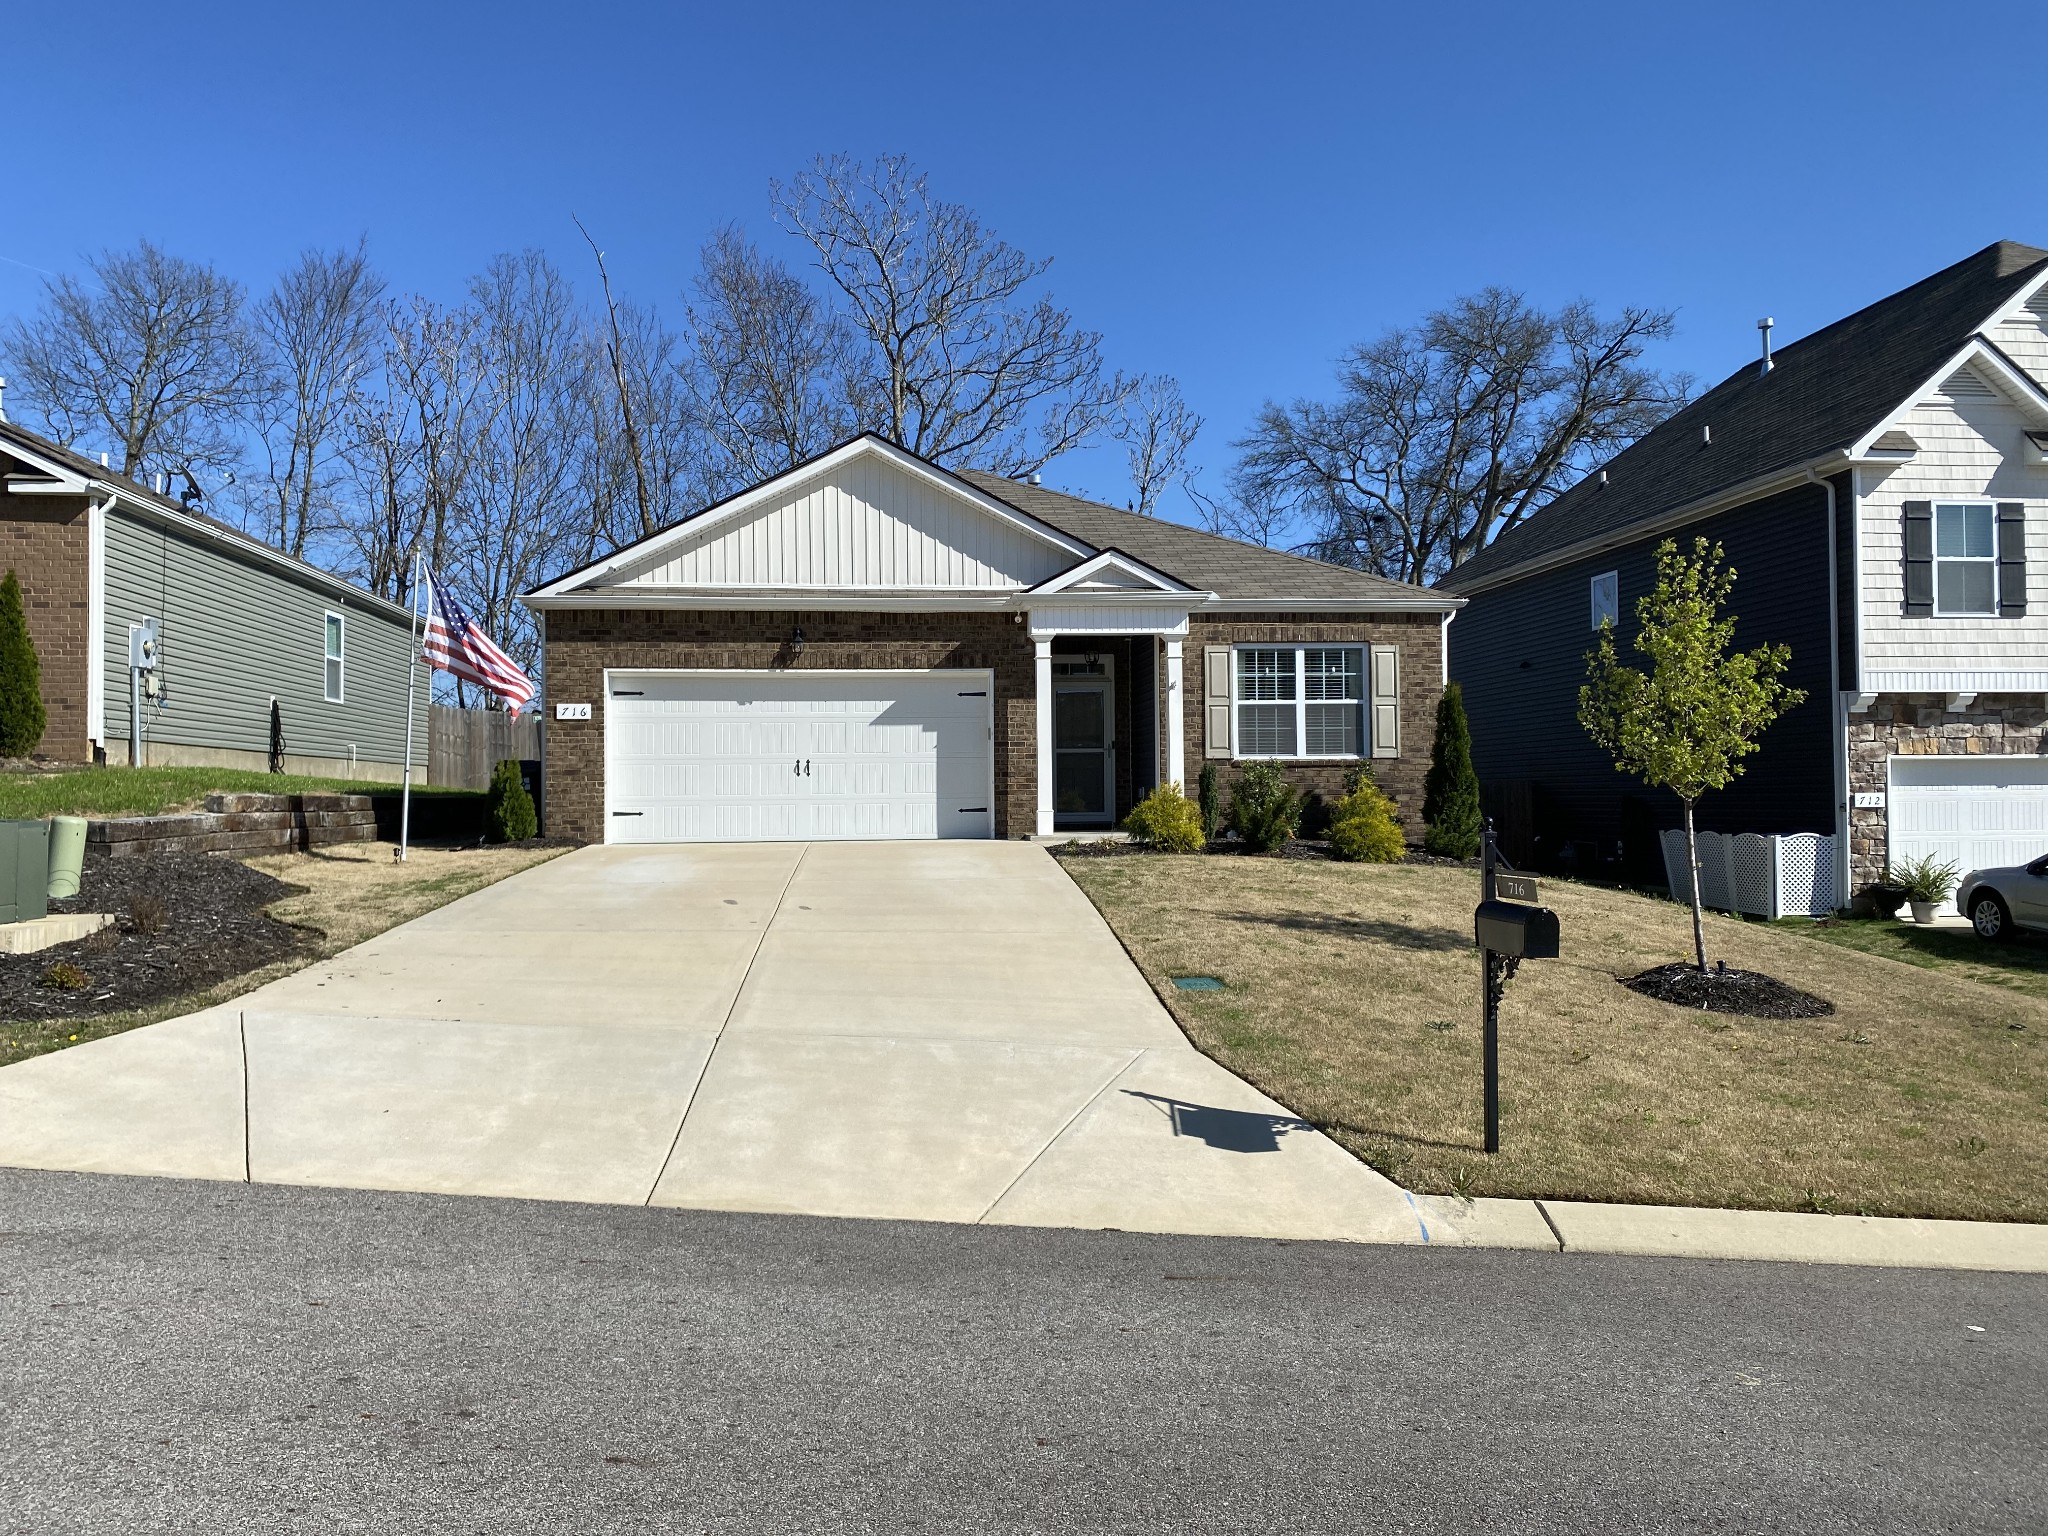 It's the less than 300K, one story home you have been searching for! Enjoy amazing sunsets on the community walking trails in this 3 bed, 2 bath home. Open kitchen with all stainless steel appliances. Upgrades including shiplap bedroom, extended back deck, beautiful landscaping, and much more. Walking distance of elementary school and Fire station. This home won't last long!!